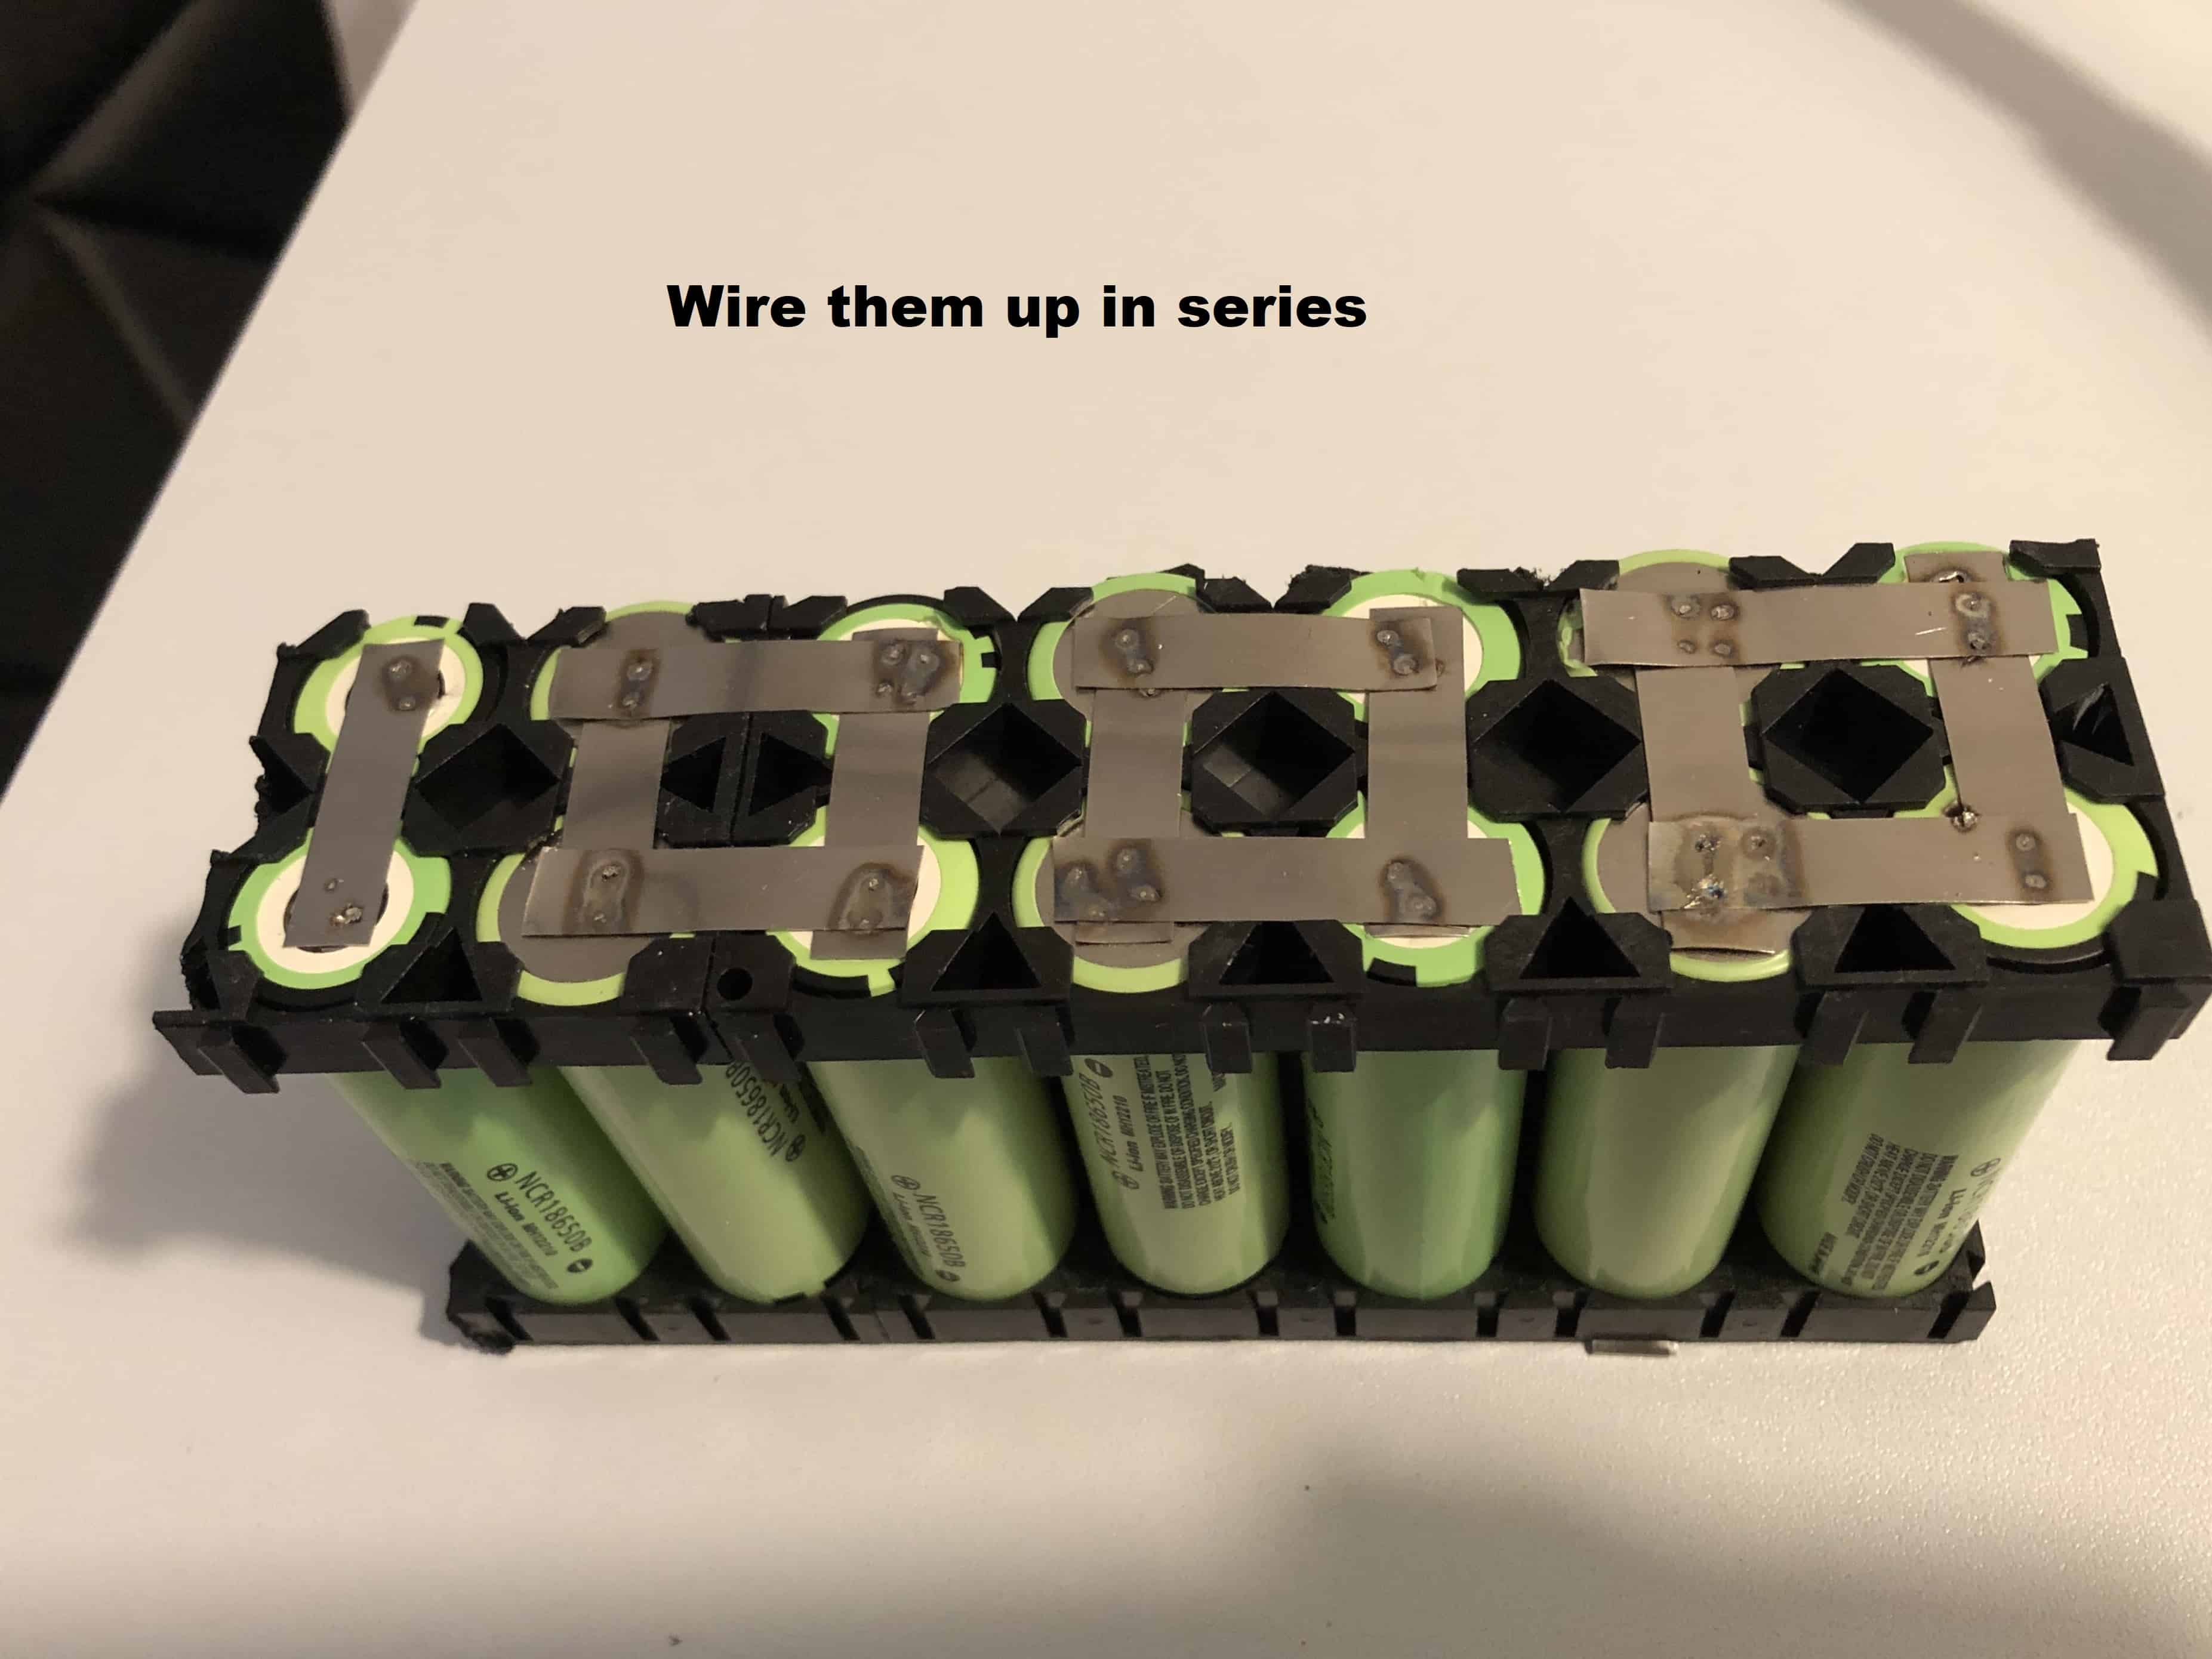 7s2p battery pack